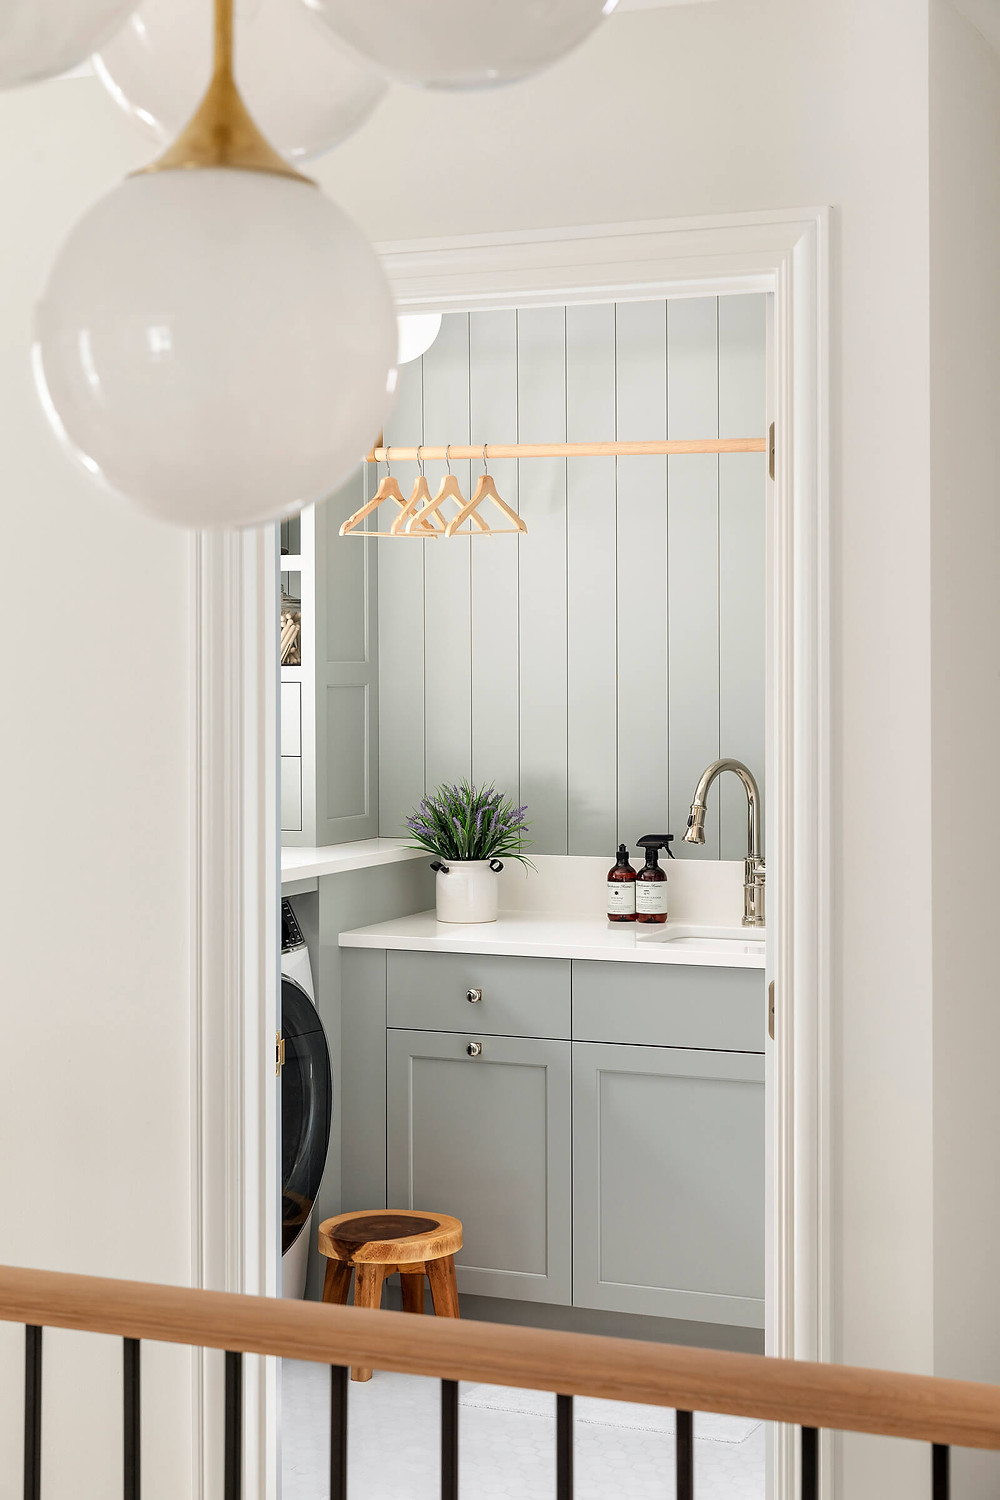 Laundry room makeover and why we chose an all monochromatic design with white marble hex tiles, polished nickel finishes and customized storage.